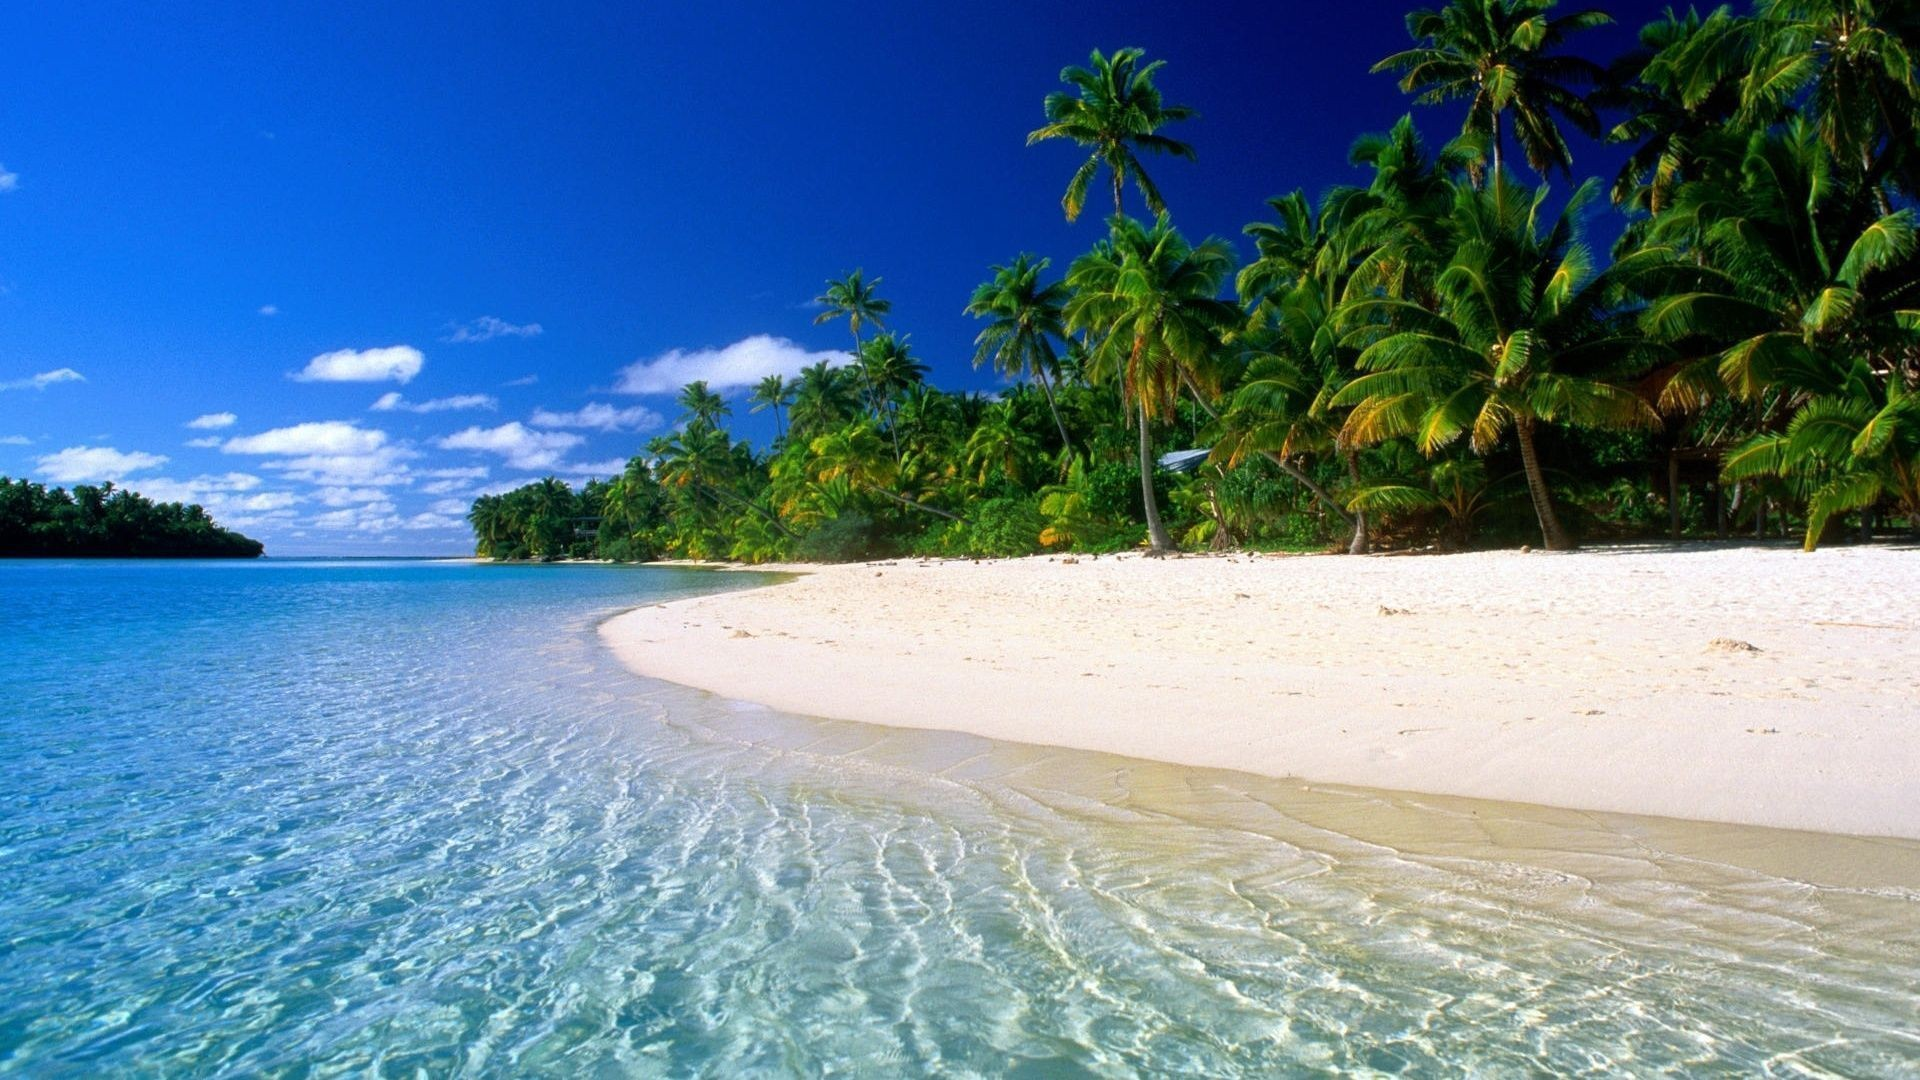 Beach Free Ipad Wallpapers: HD Beach Wallpaper ·① Download Free Amazing Backgrounds